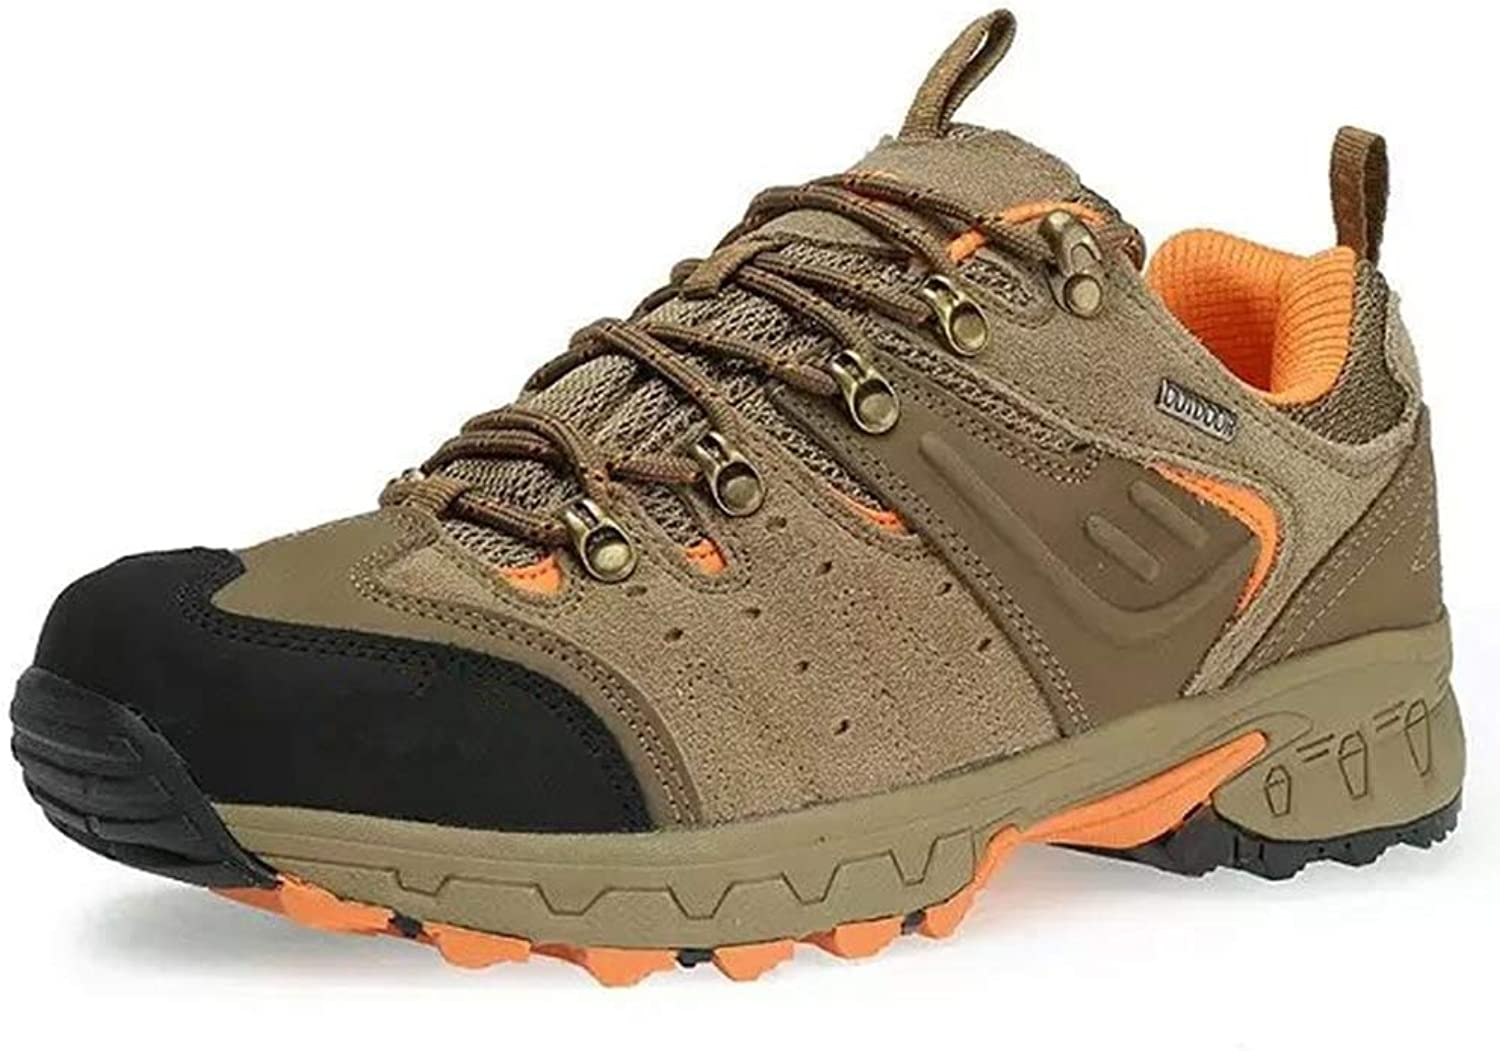 Men's Outdoor shoes Fall Winter Keep Warm Non Slip shoes Tourism Hiking Trekking shoes Brown Yellow Brown Red,B,41